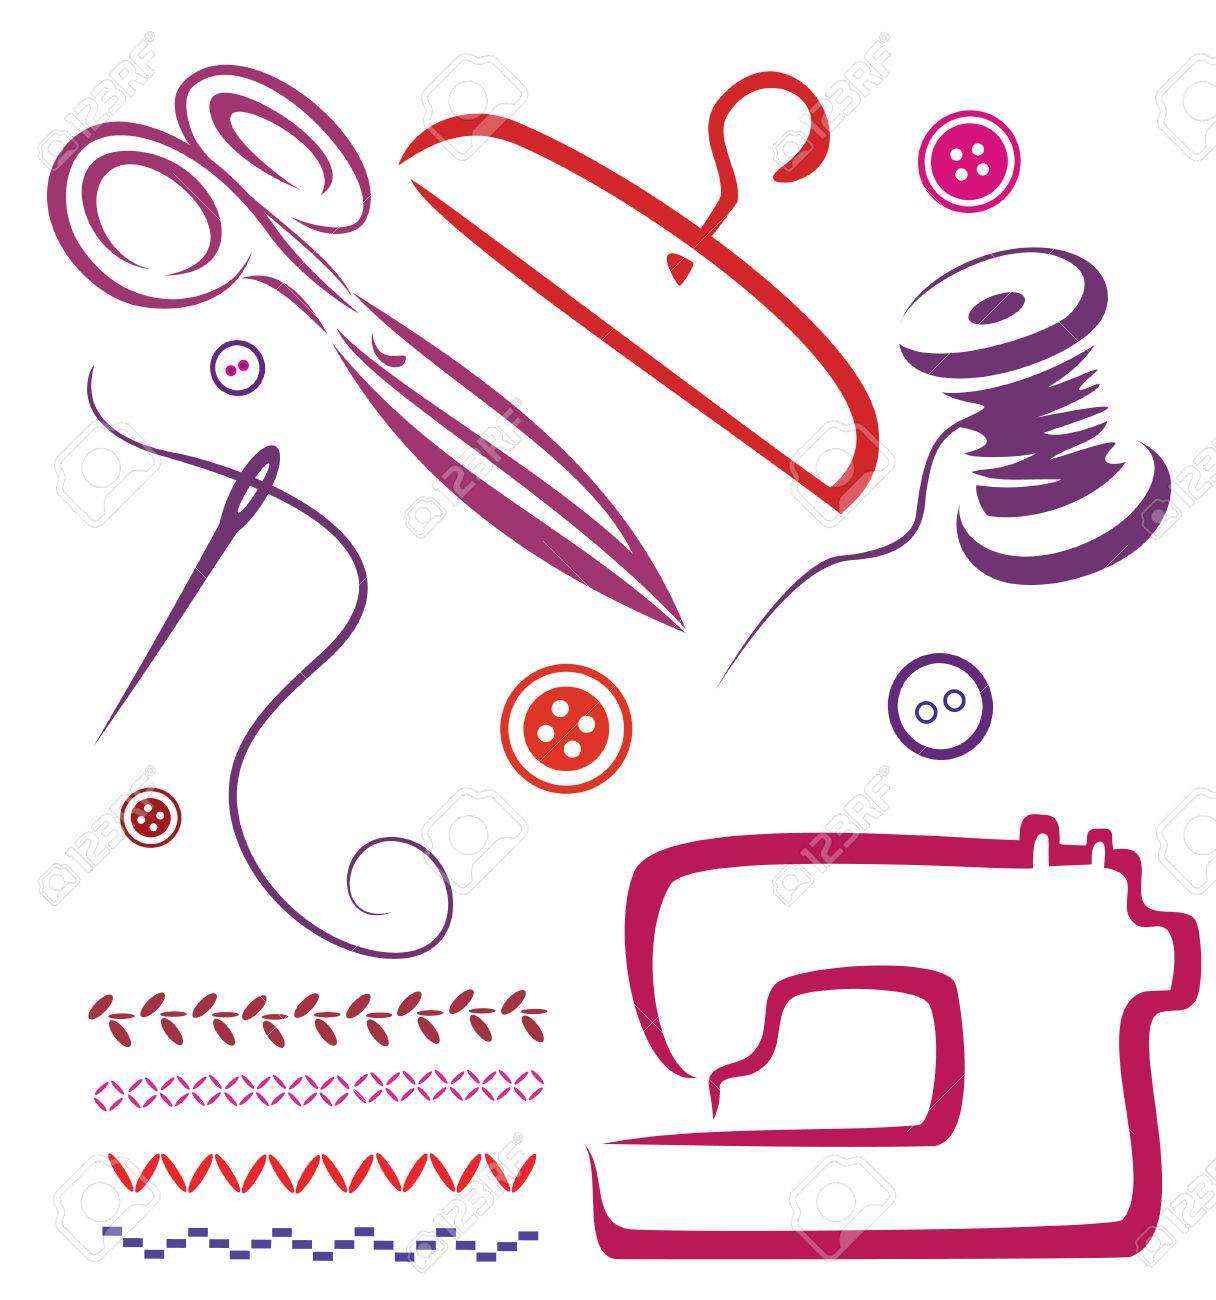 Sewing Tools And Objects Set Vector Illustration In Simple Lines Stock